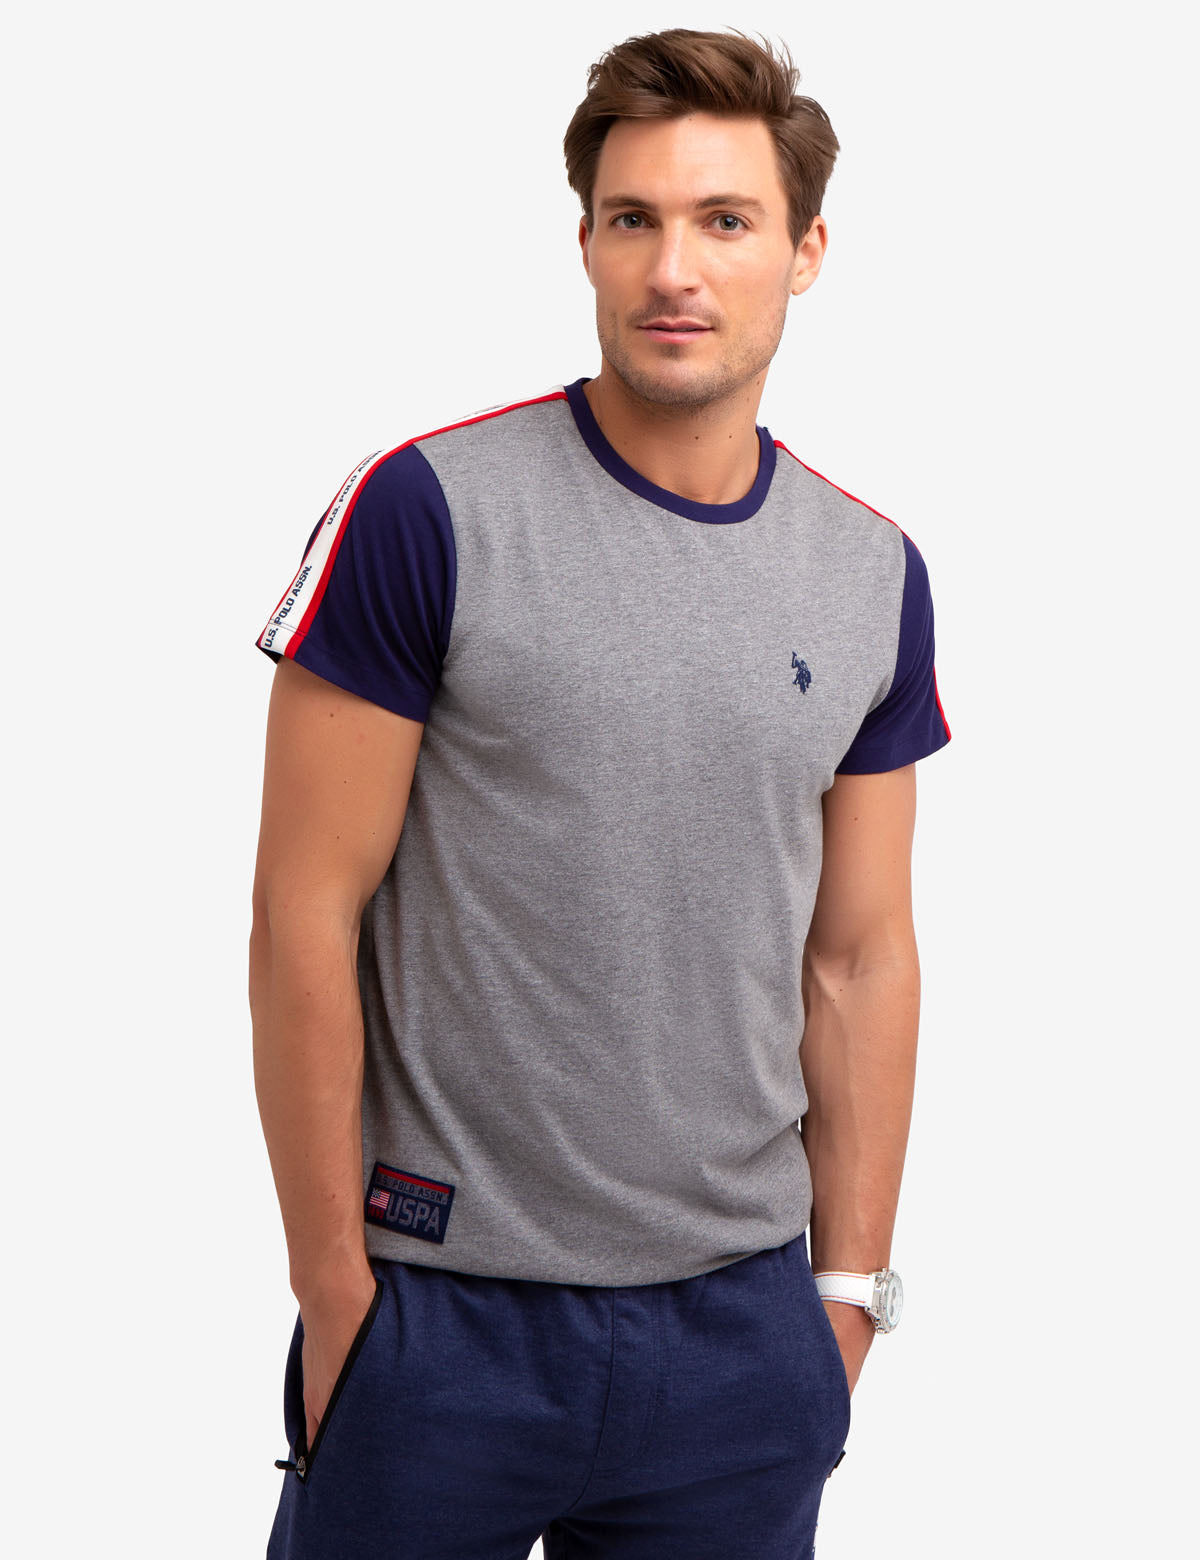 COLORBLOCK T-SHIRT WITH U.S. POLO ASSN. TAPING